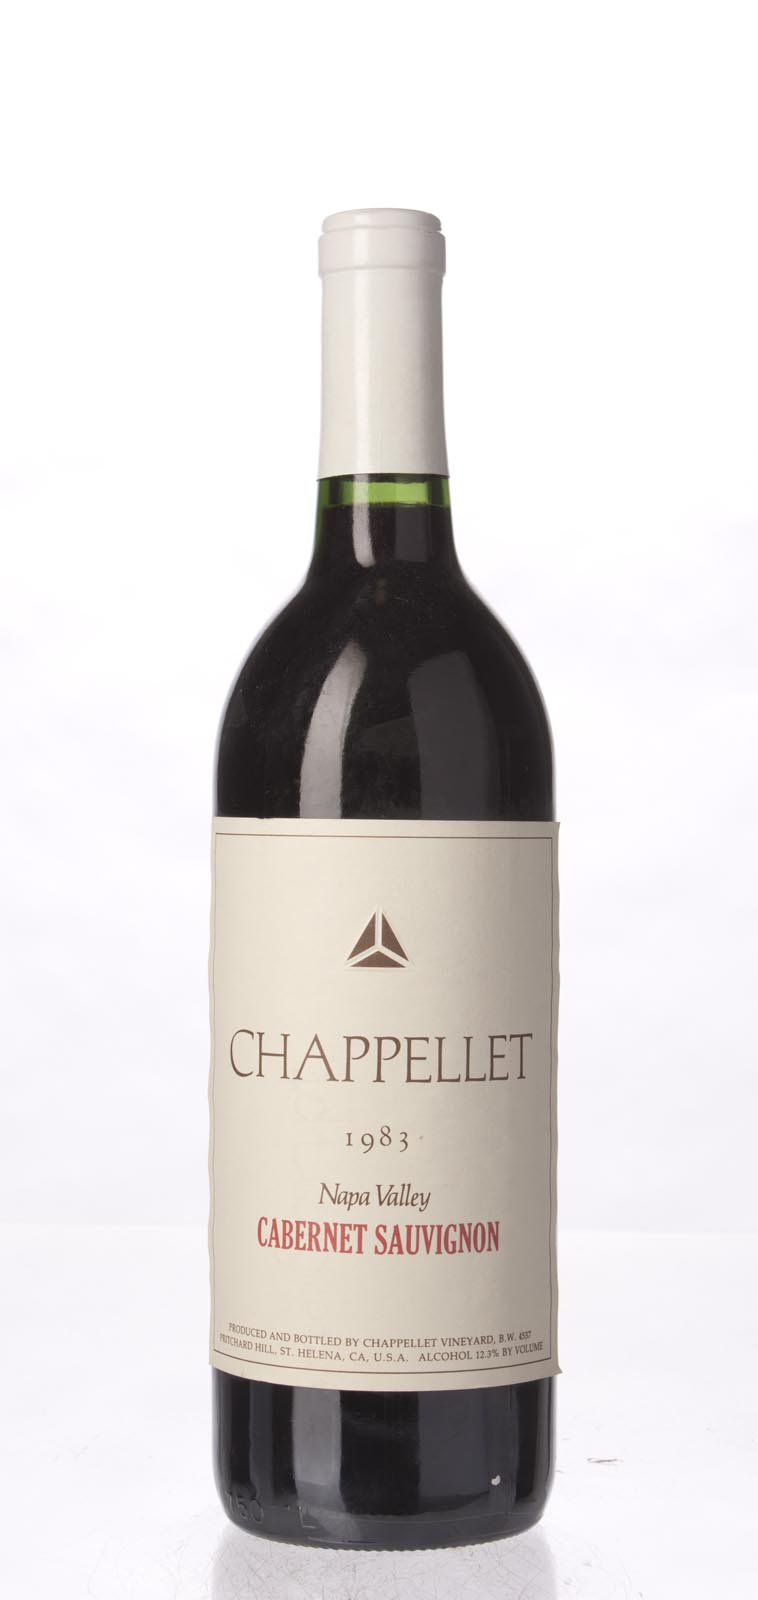 Chappellet Cabernet Sauvignon Napa Valley 1983, 750mL () from The BPW - Merchants of rare and fine wines.